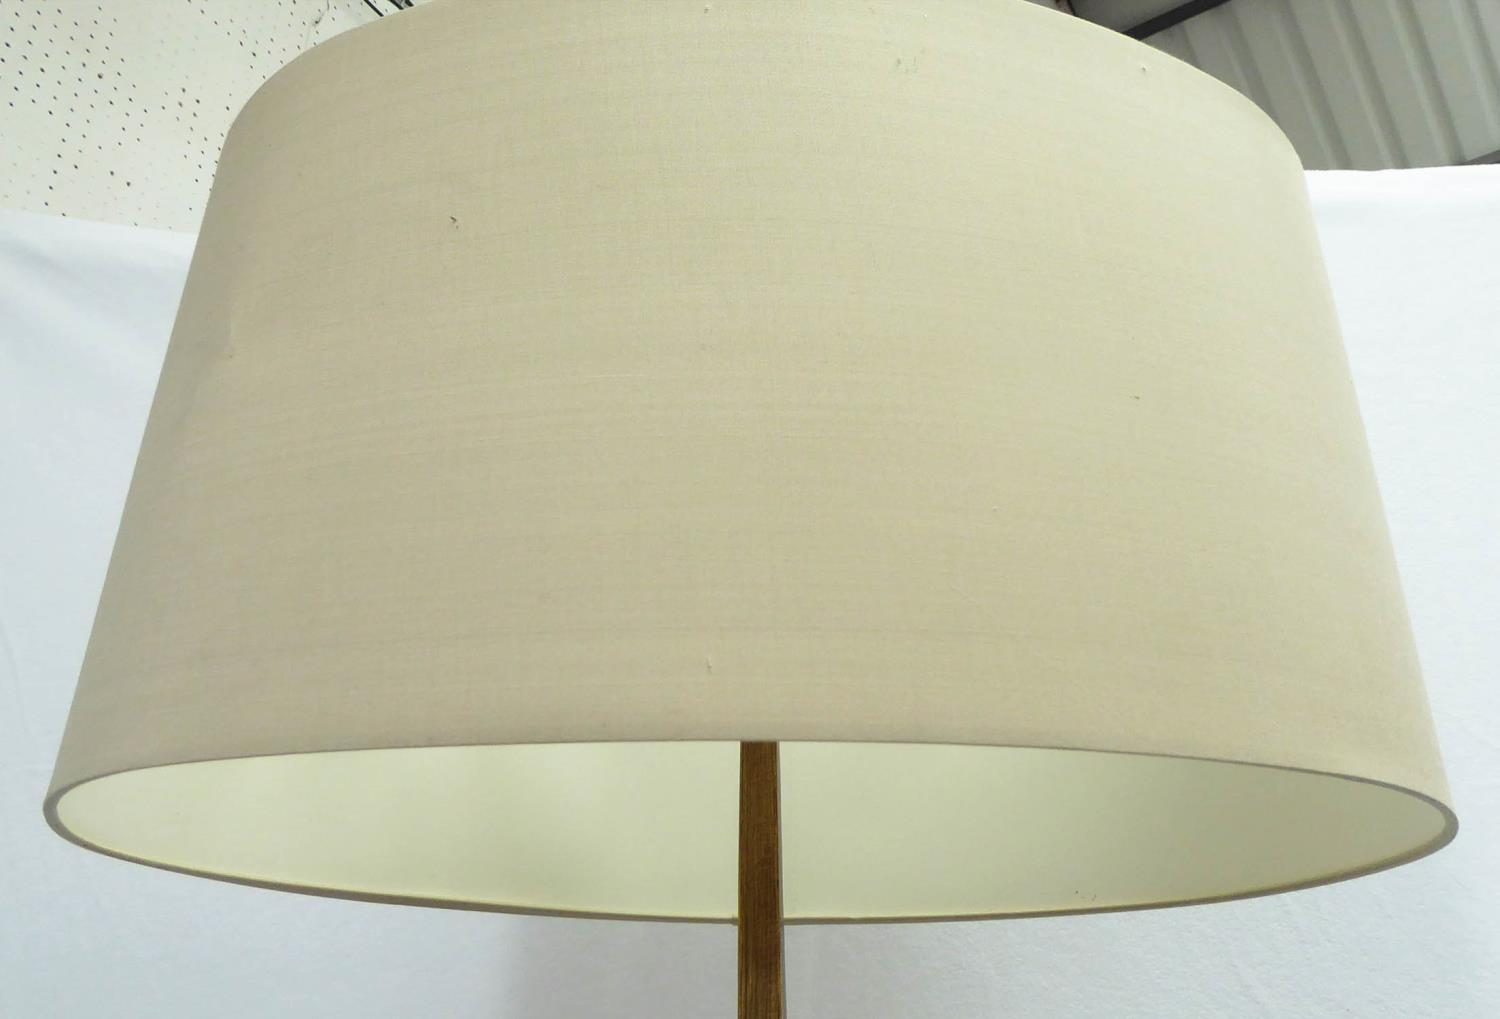 PORTA ROMANA TAPERING HARRAL FLOOR LAMP, with shade, 189cm H. - Image 2 of 5